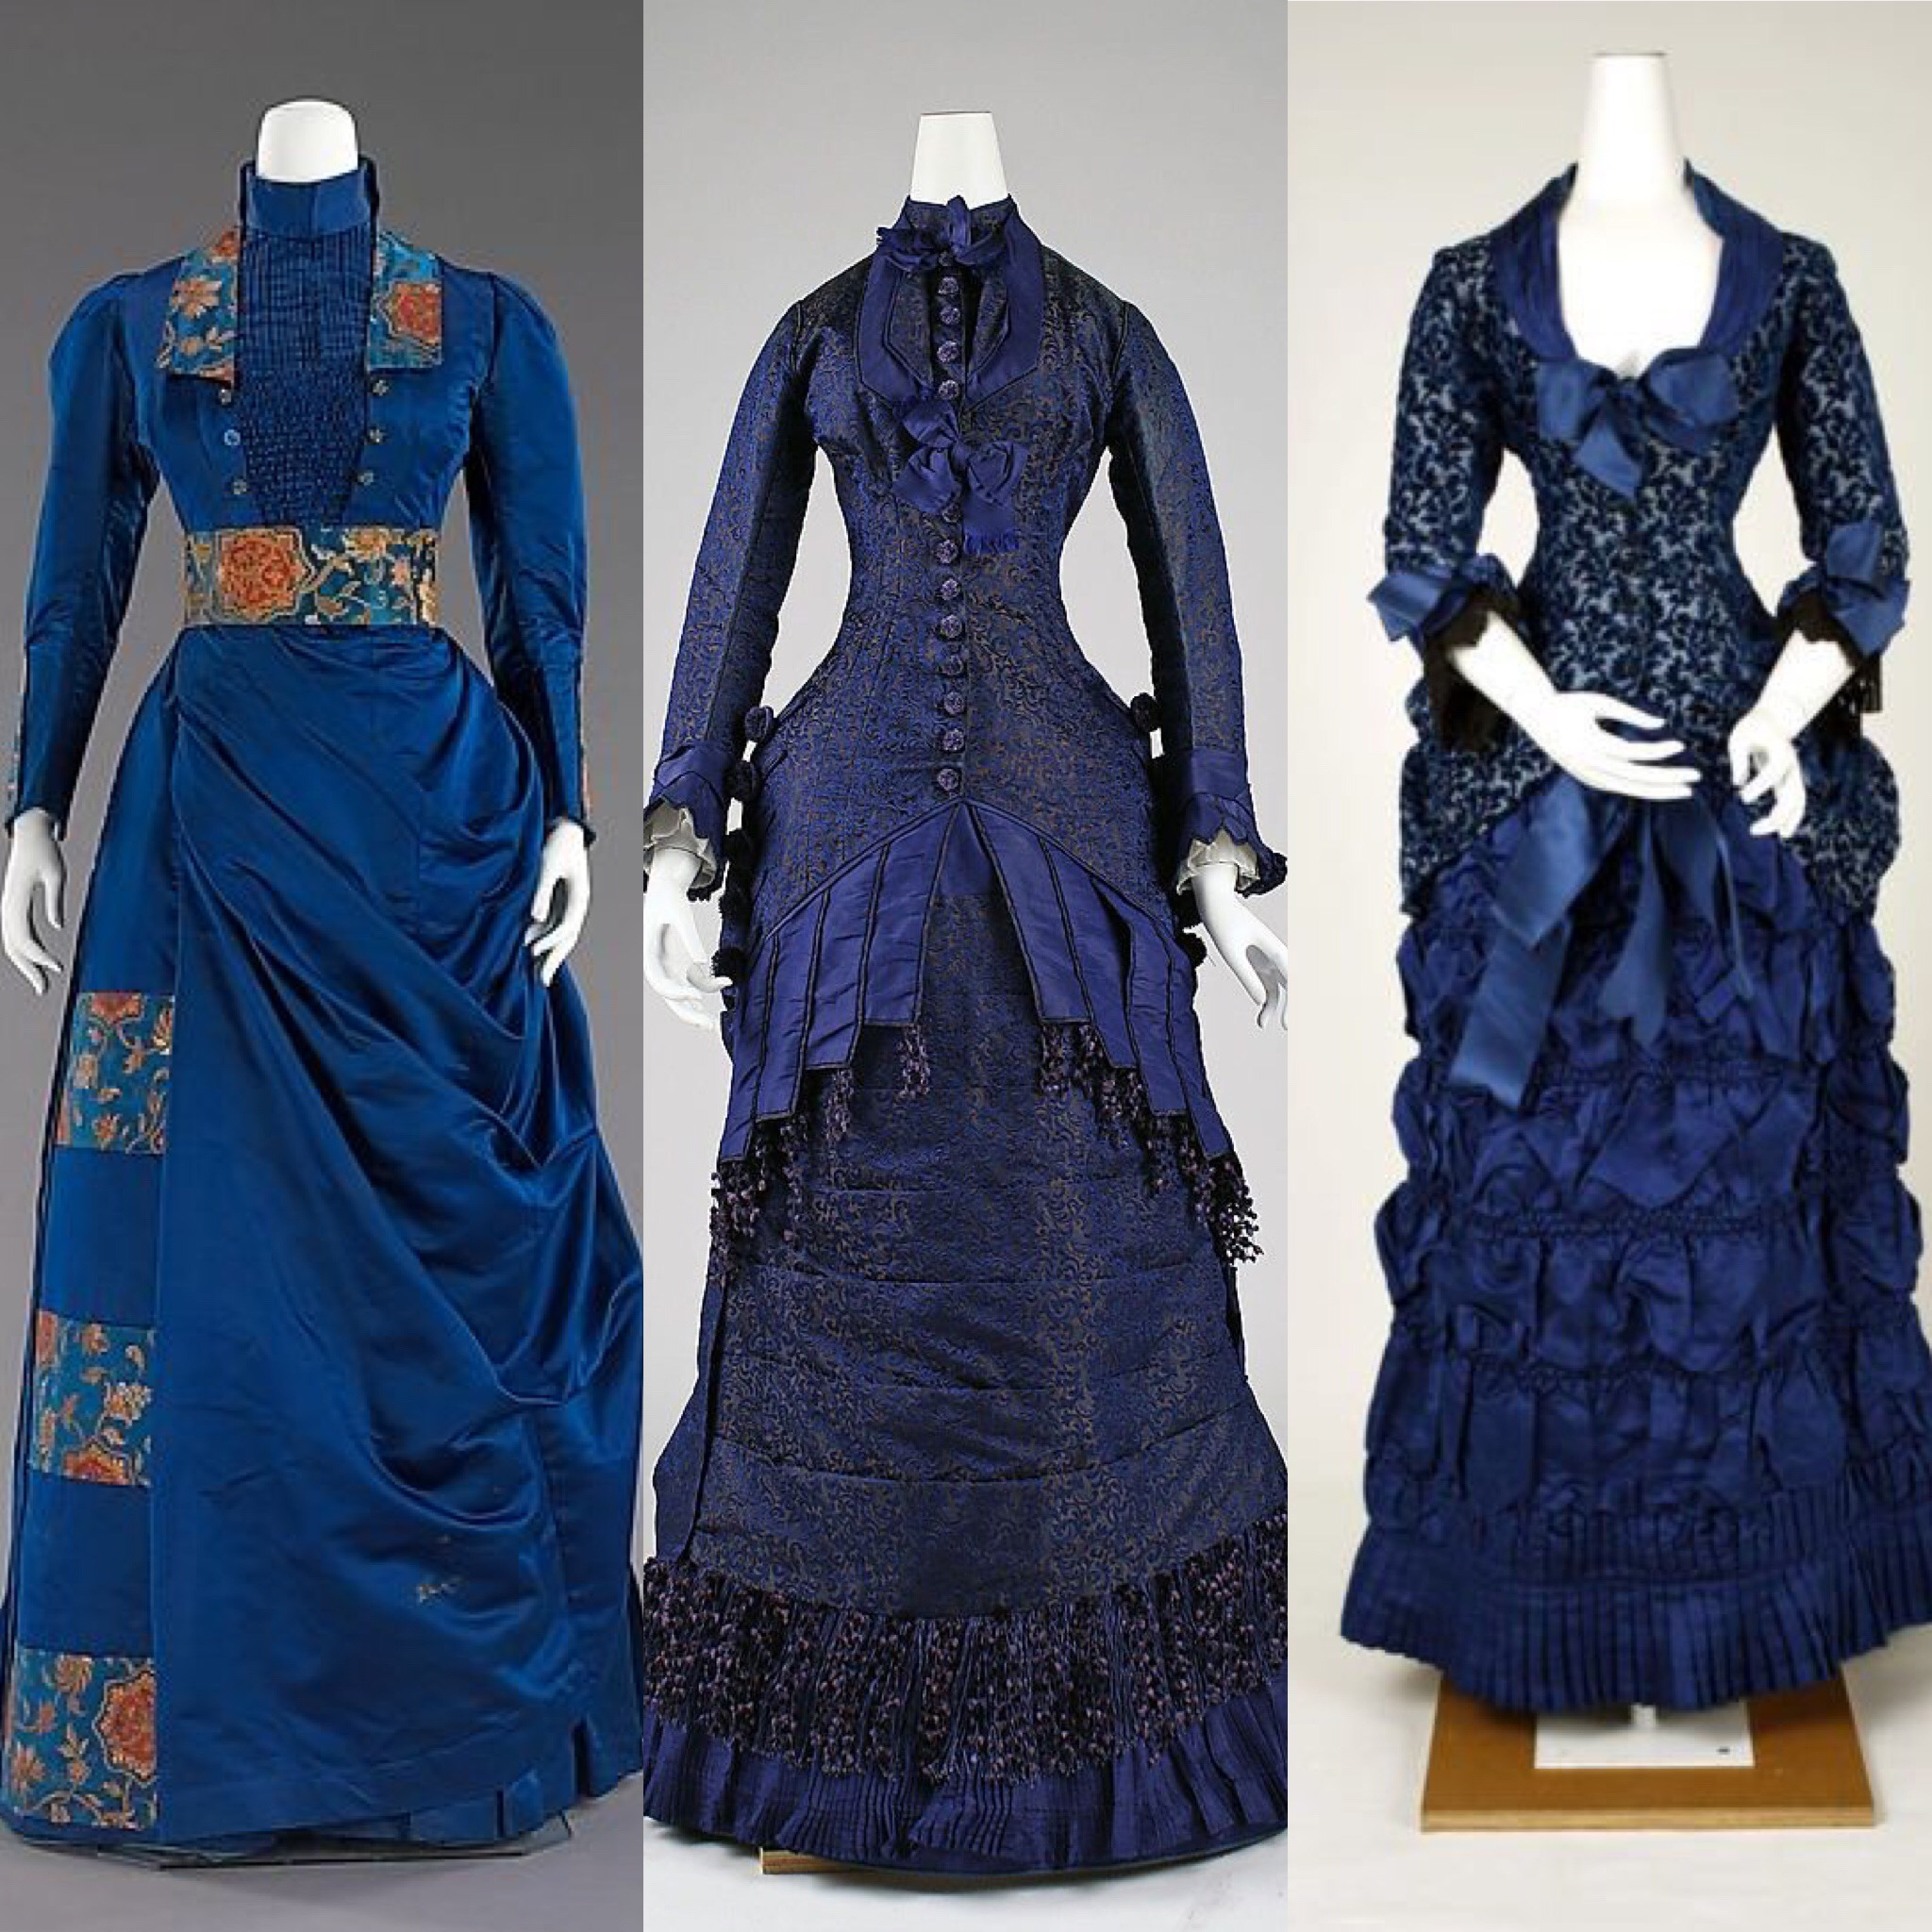 Victorian Dress Archives -